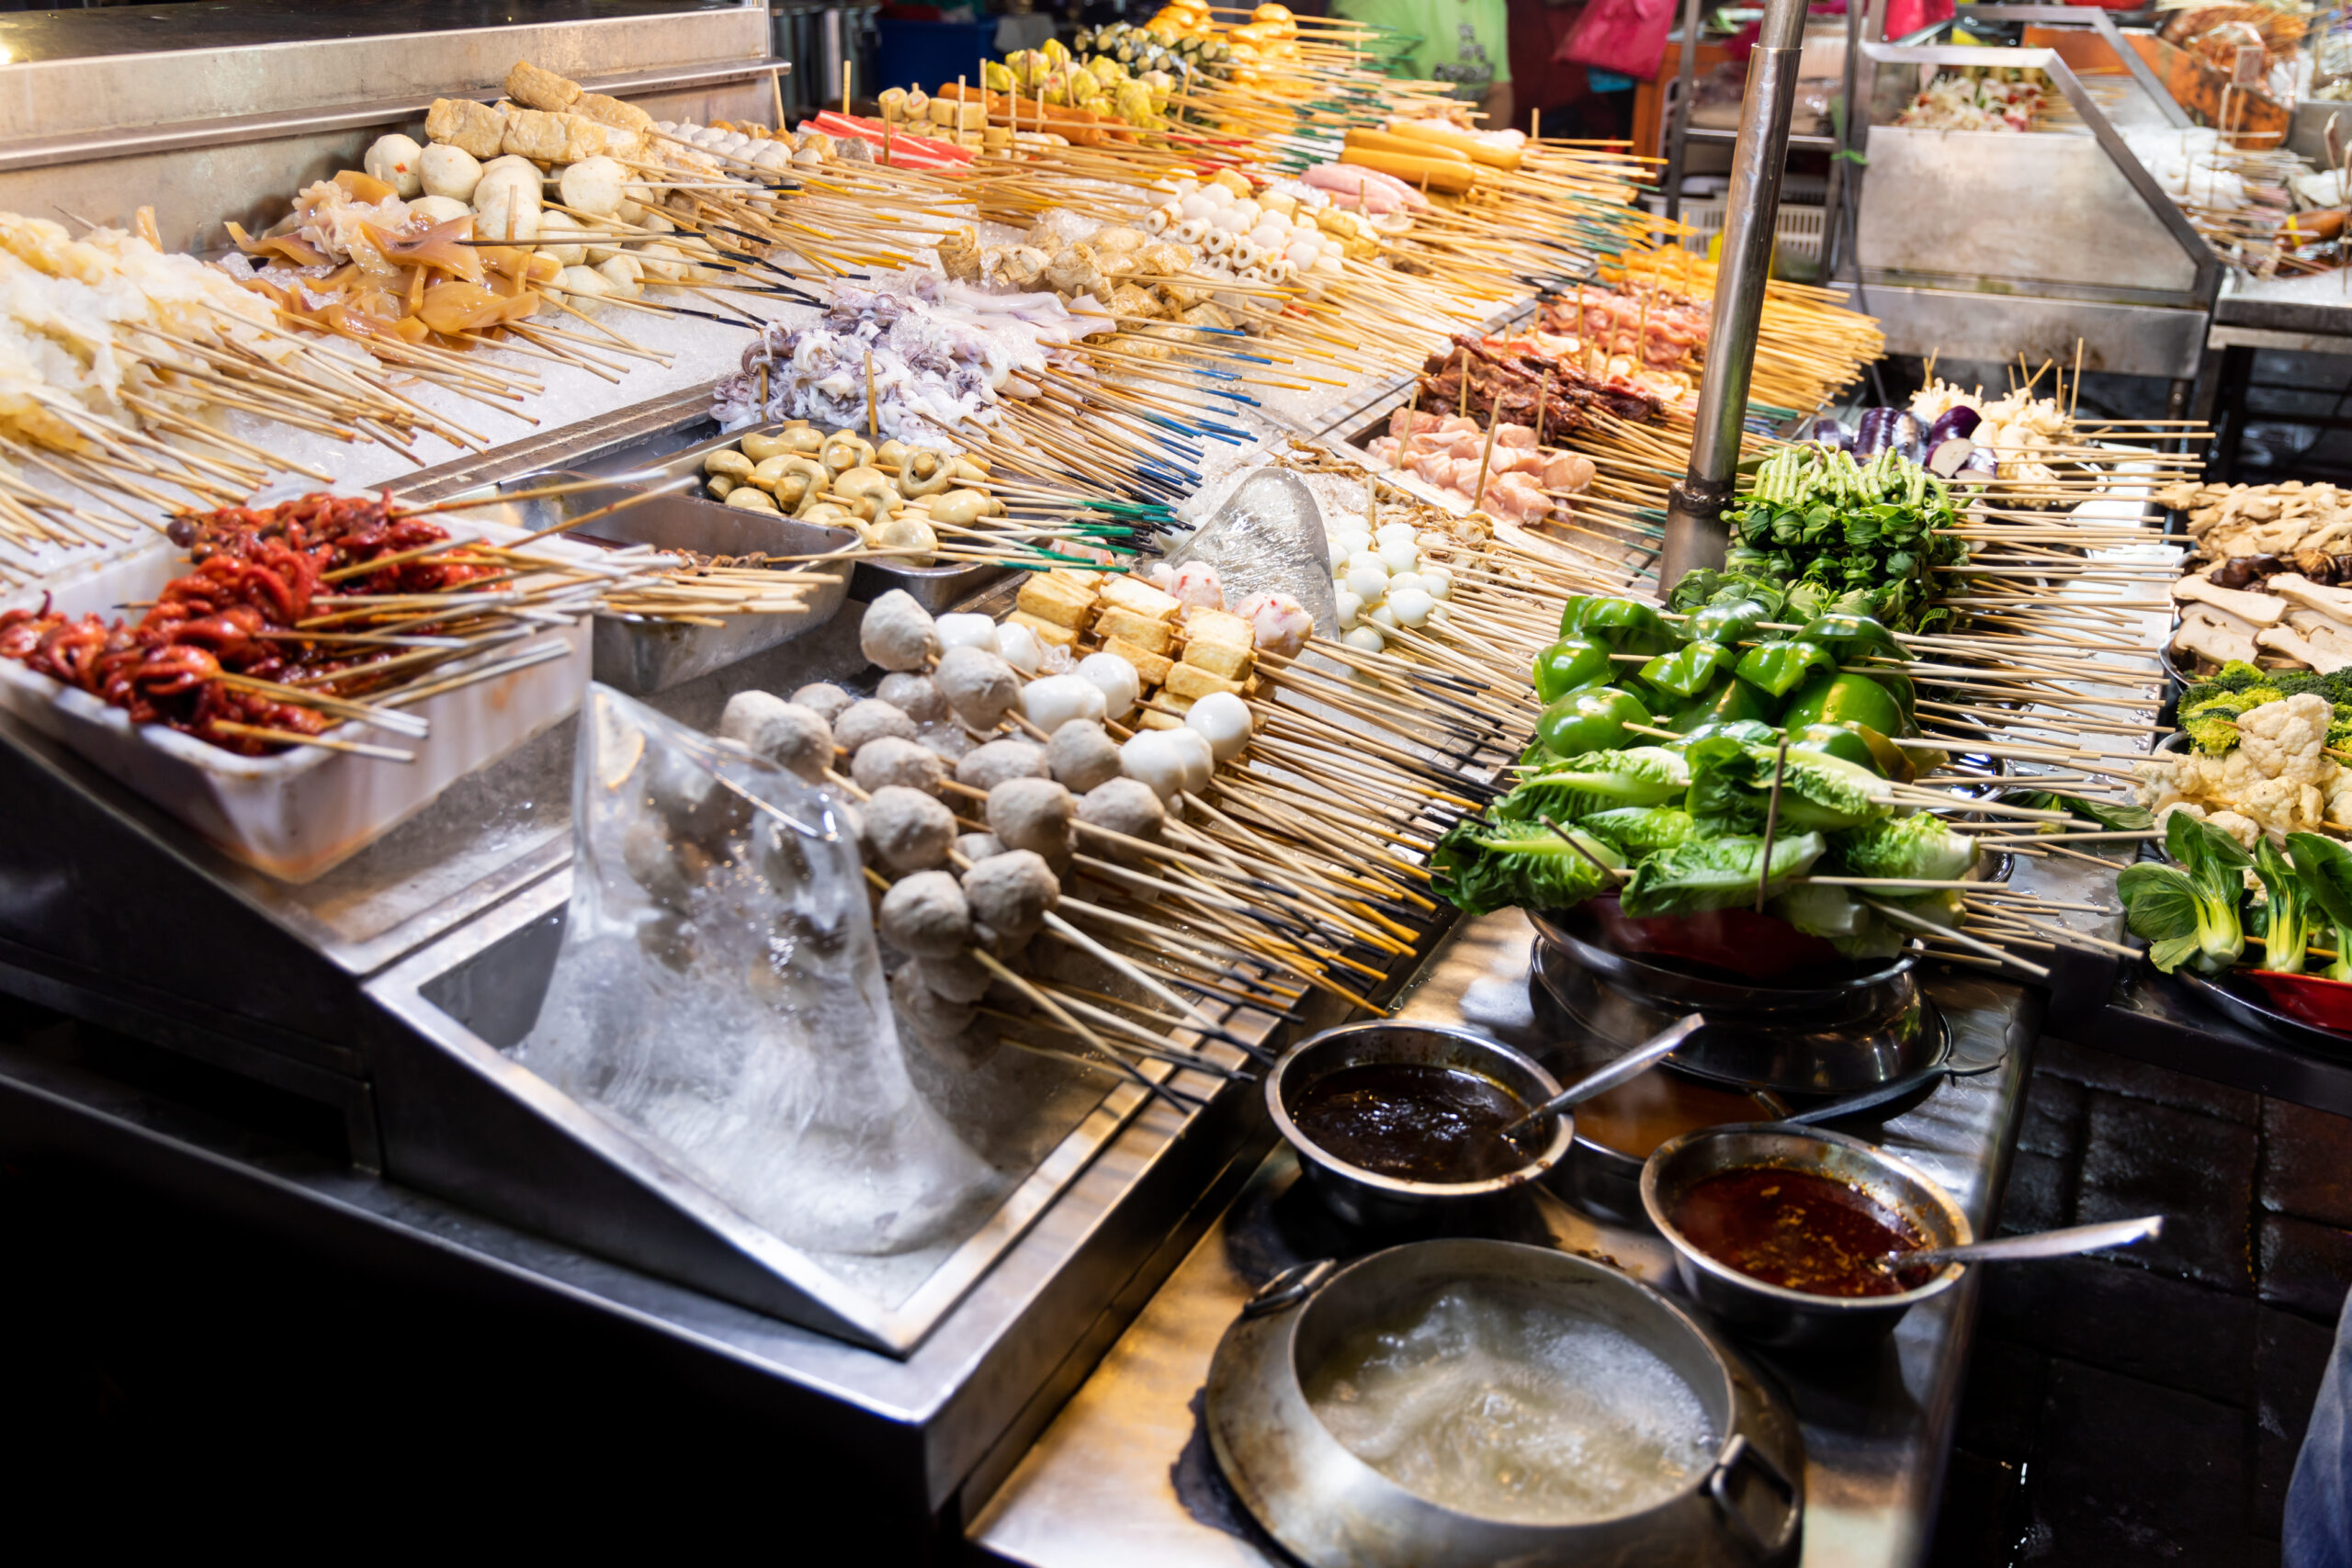 Array of popular local delicacy named lok lok at Jalan Alor, popular tourist destination in Kuala Lumpur, Malaysia